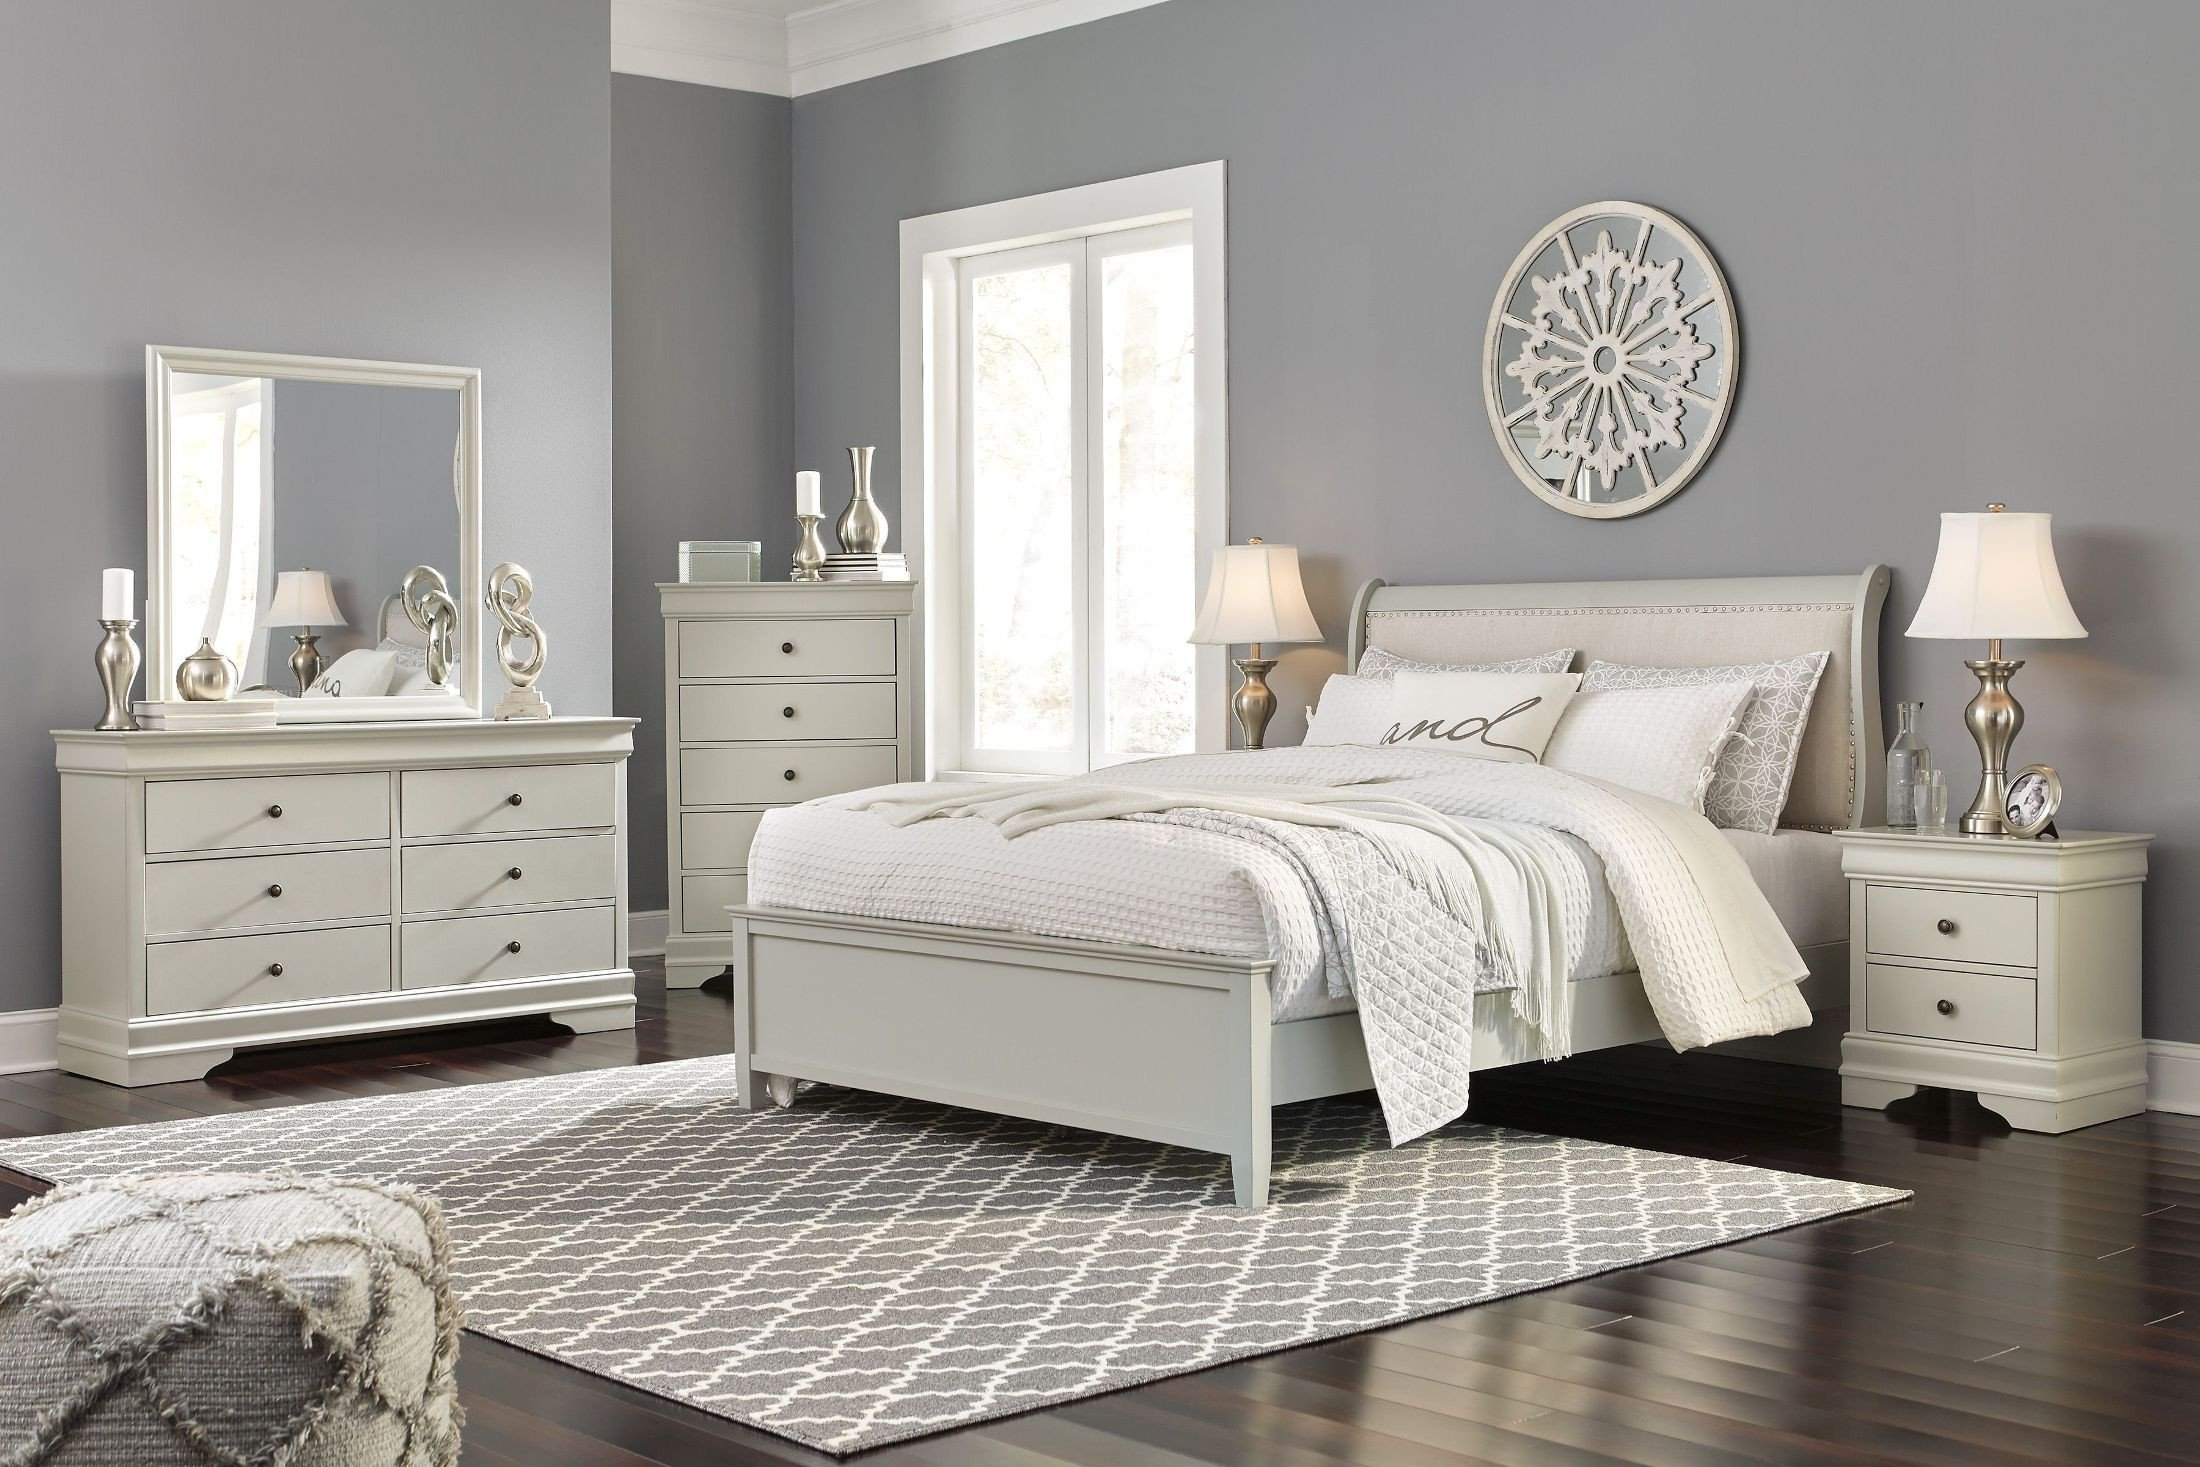 White Tufted Bedroom Set Elegant Emma Mason Signature Jarred 5 Piece Sleigh Bedroom Set In Gray